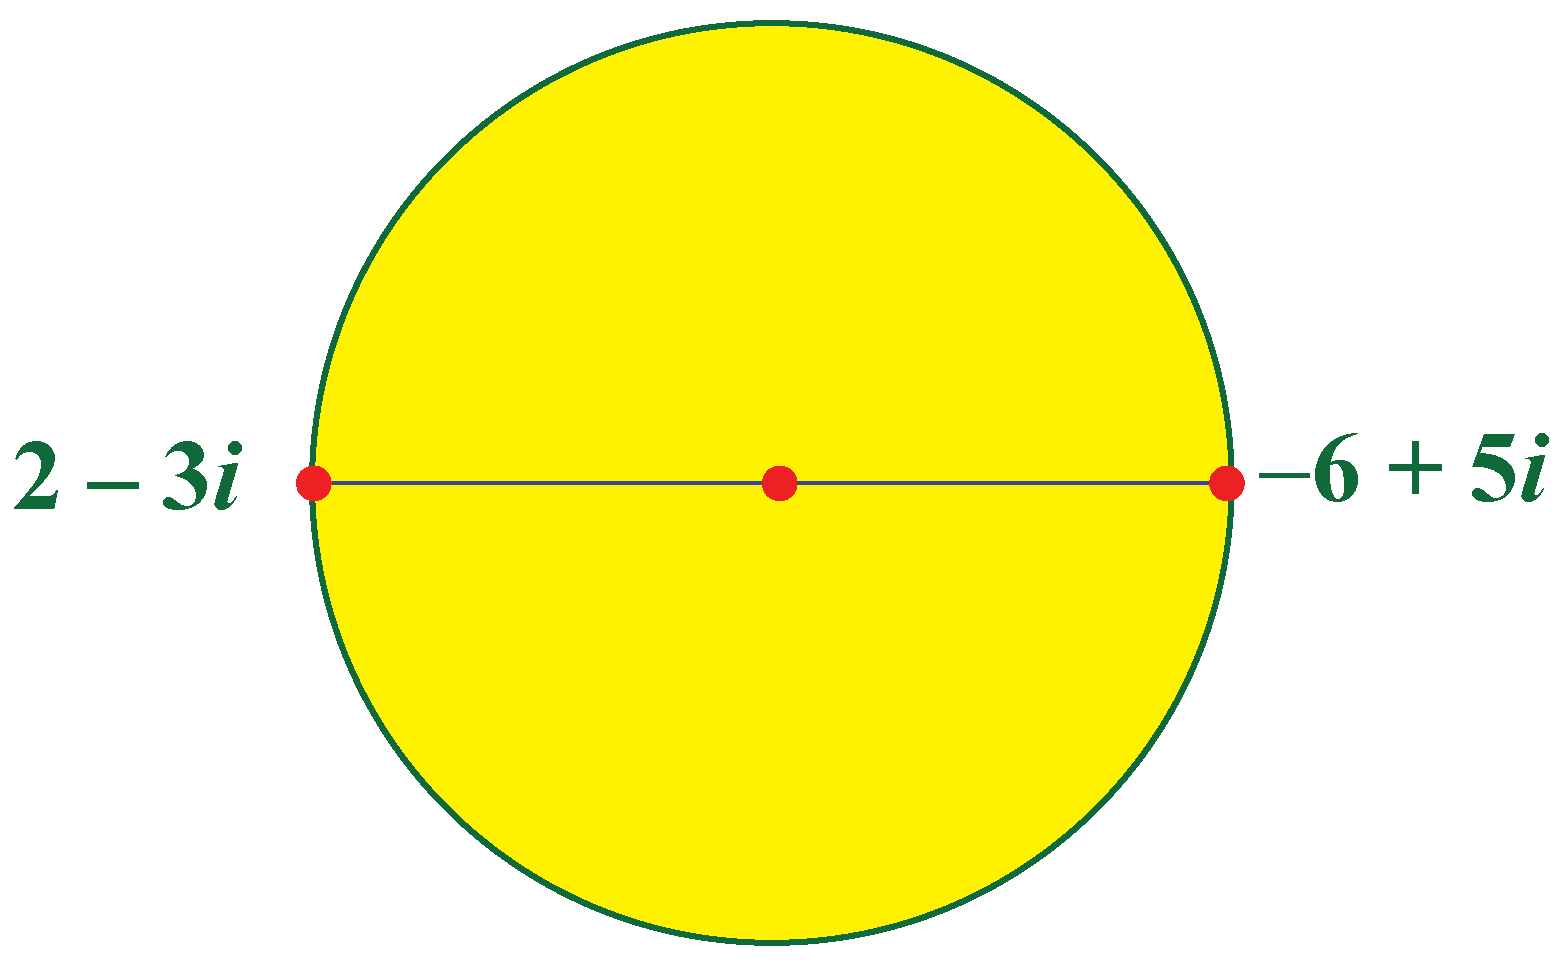 Find the coordinates of the center of this circle.